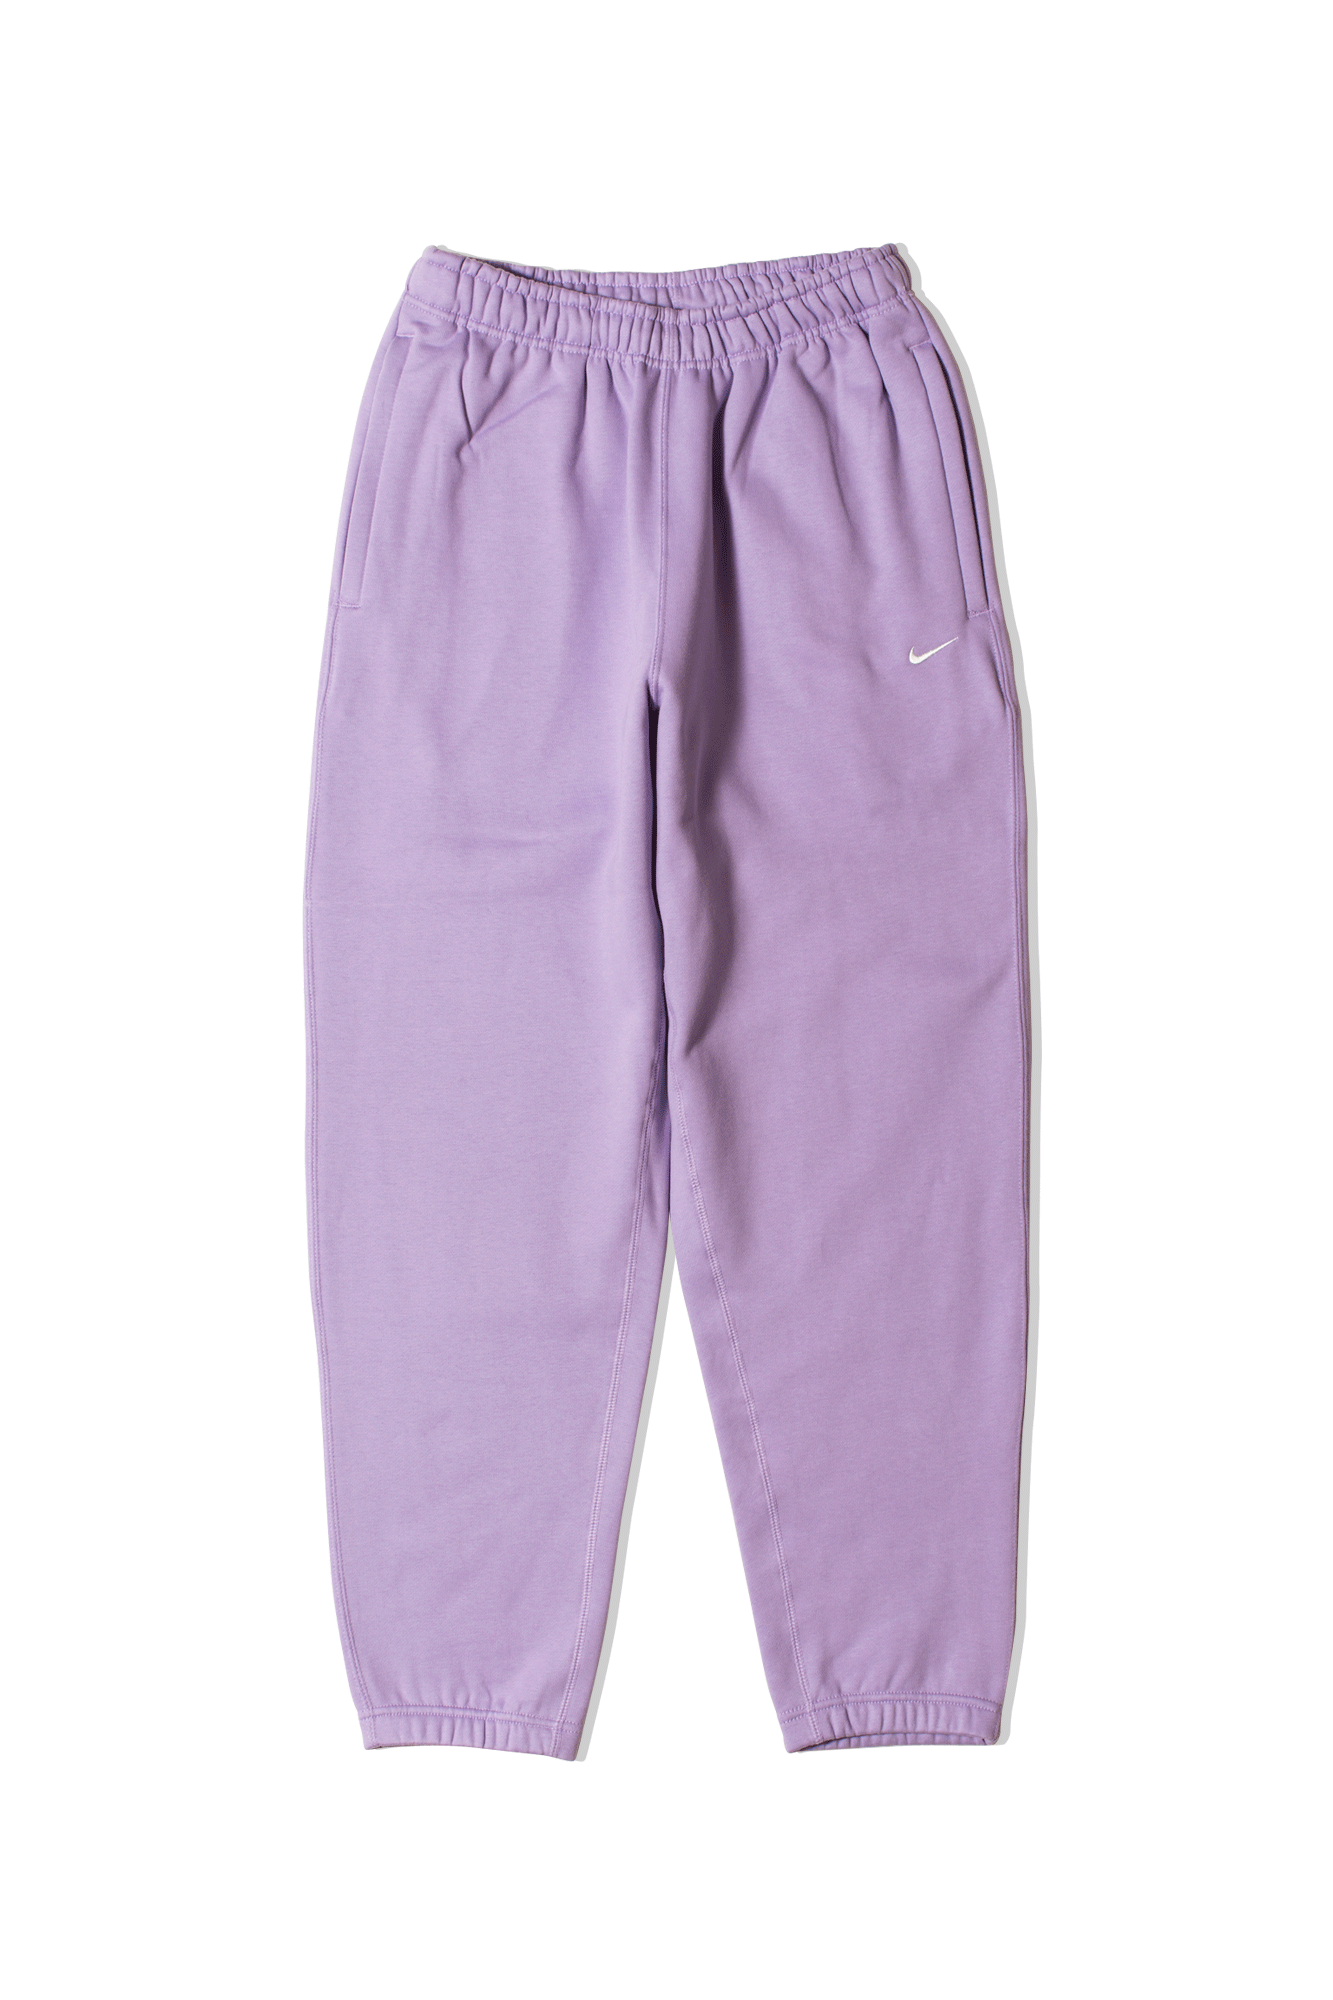 M NRG SlowSwoosh Fleece Pant Viola